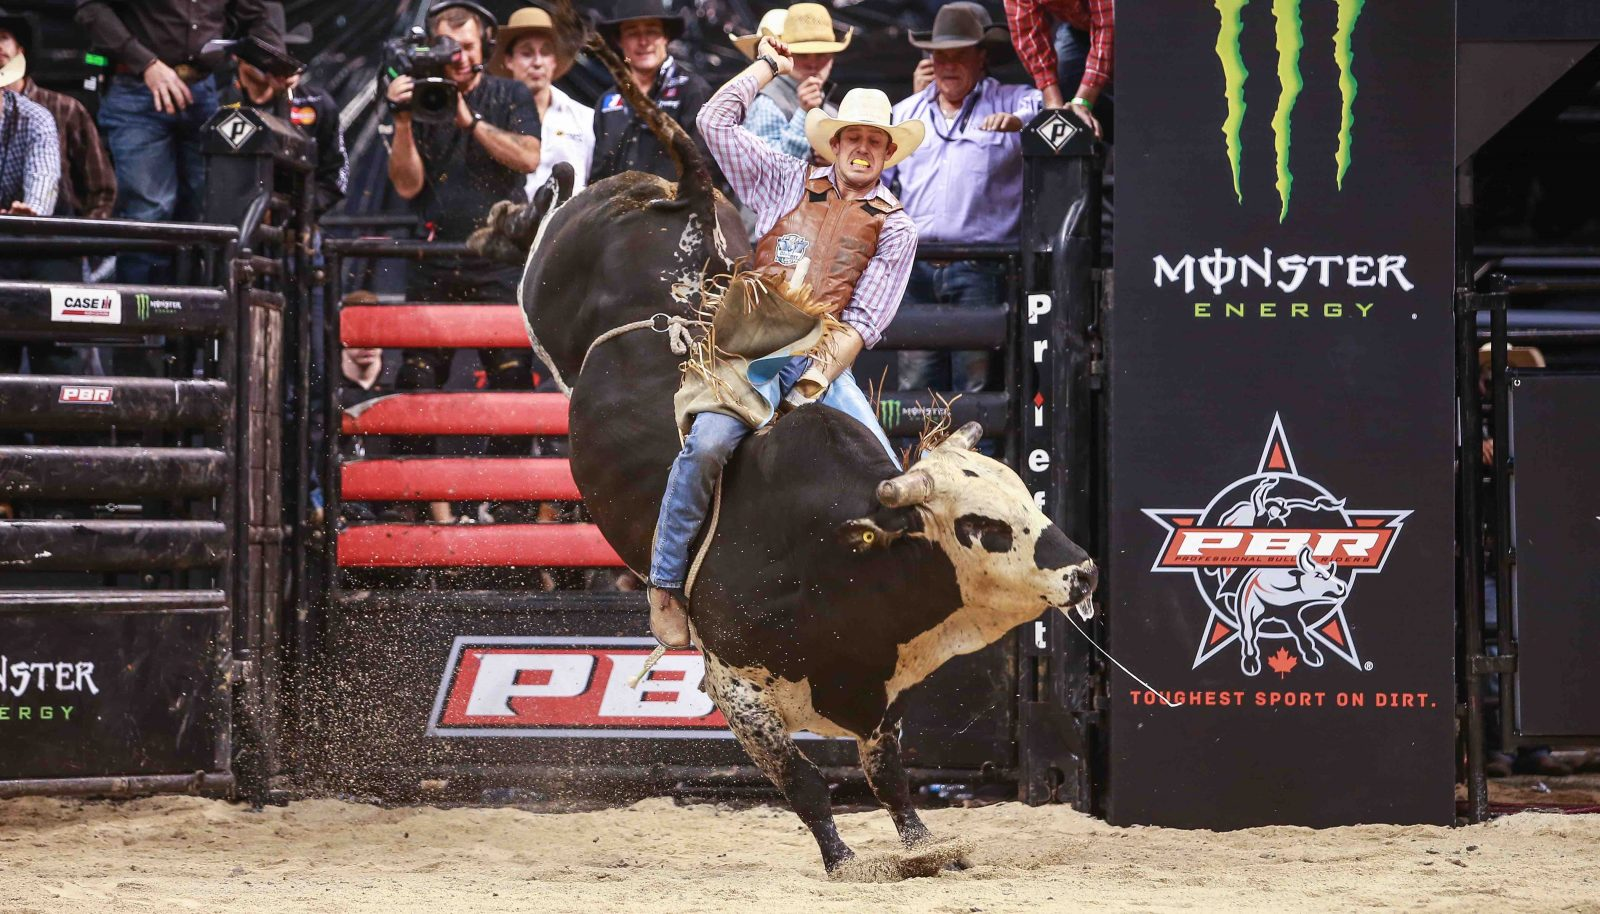 Werries Takes Pbr Monster Energy Stop At Mts Centre